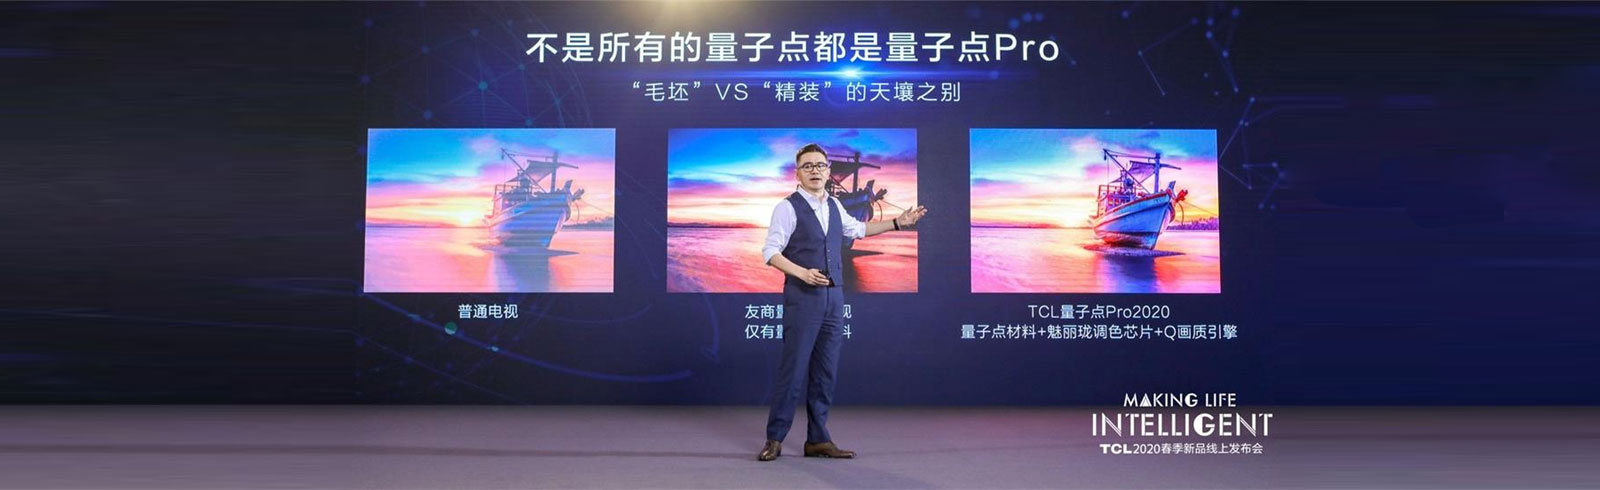 TCL announces the C8, P9 and V8 TV series for China